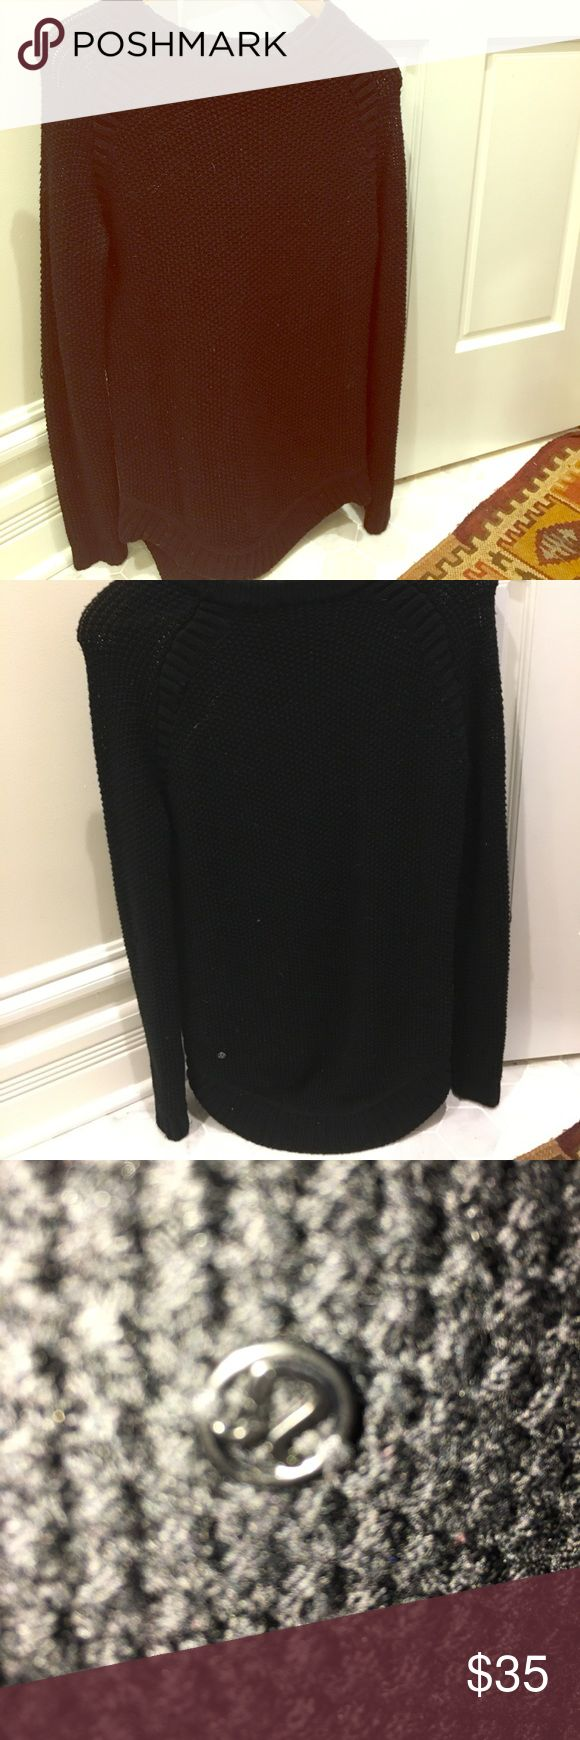 Lululemon long black sweater! Grab this up! Beautiful Lululemon sweater! Size 4.  I cannot find the name of the sweater as it was originally bought in 2015 - thus the deep discount!! lululemon athletica Sweaters Crew & Scoop Necks